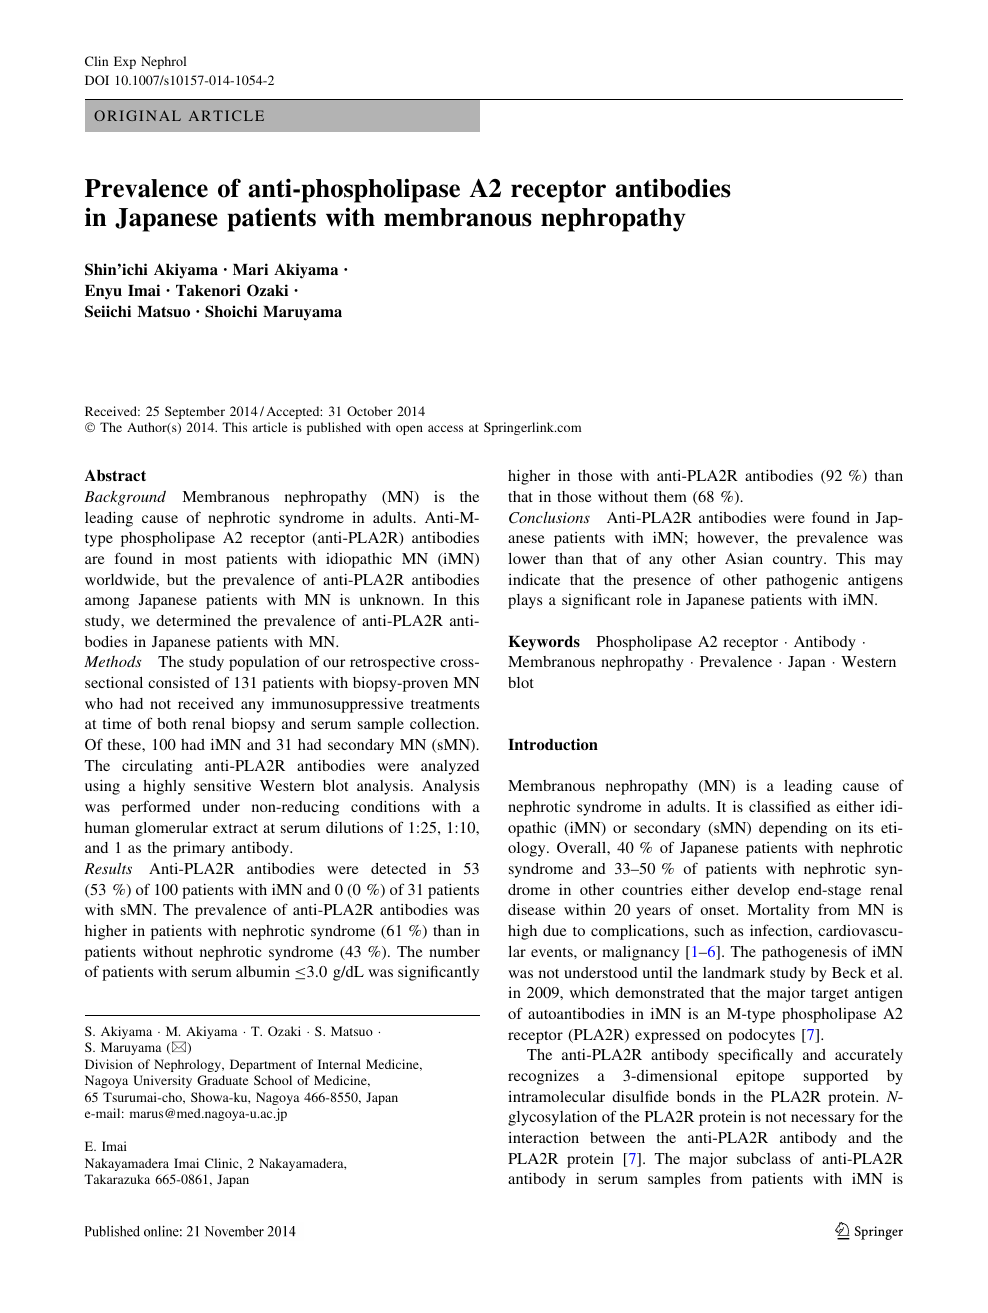 Prevalence of anti-phospholipase A2 receptor antibodies in Japanese